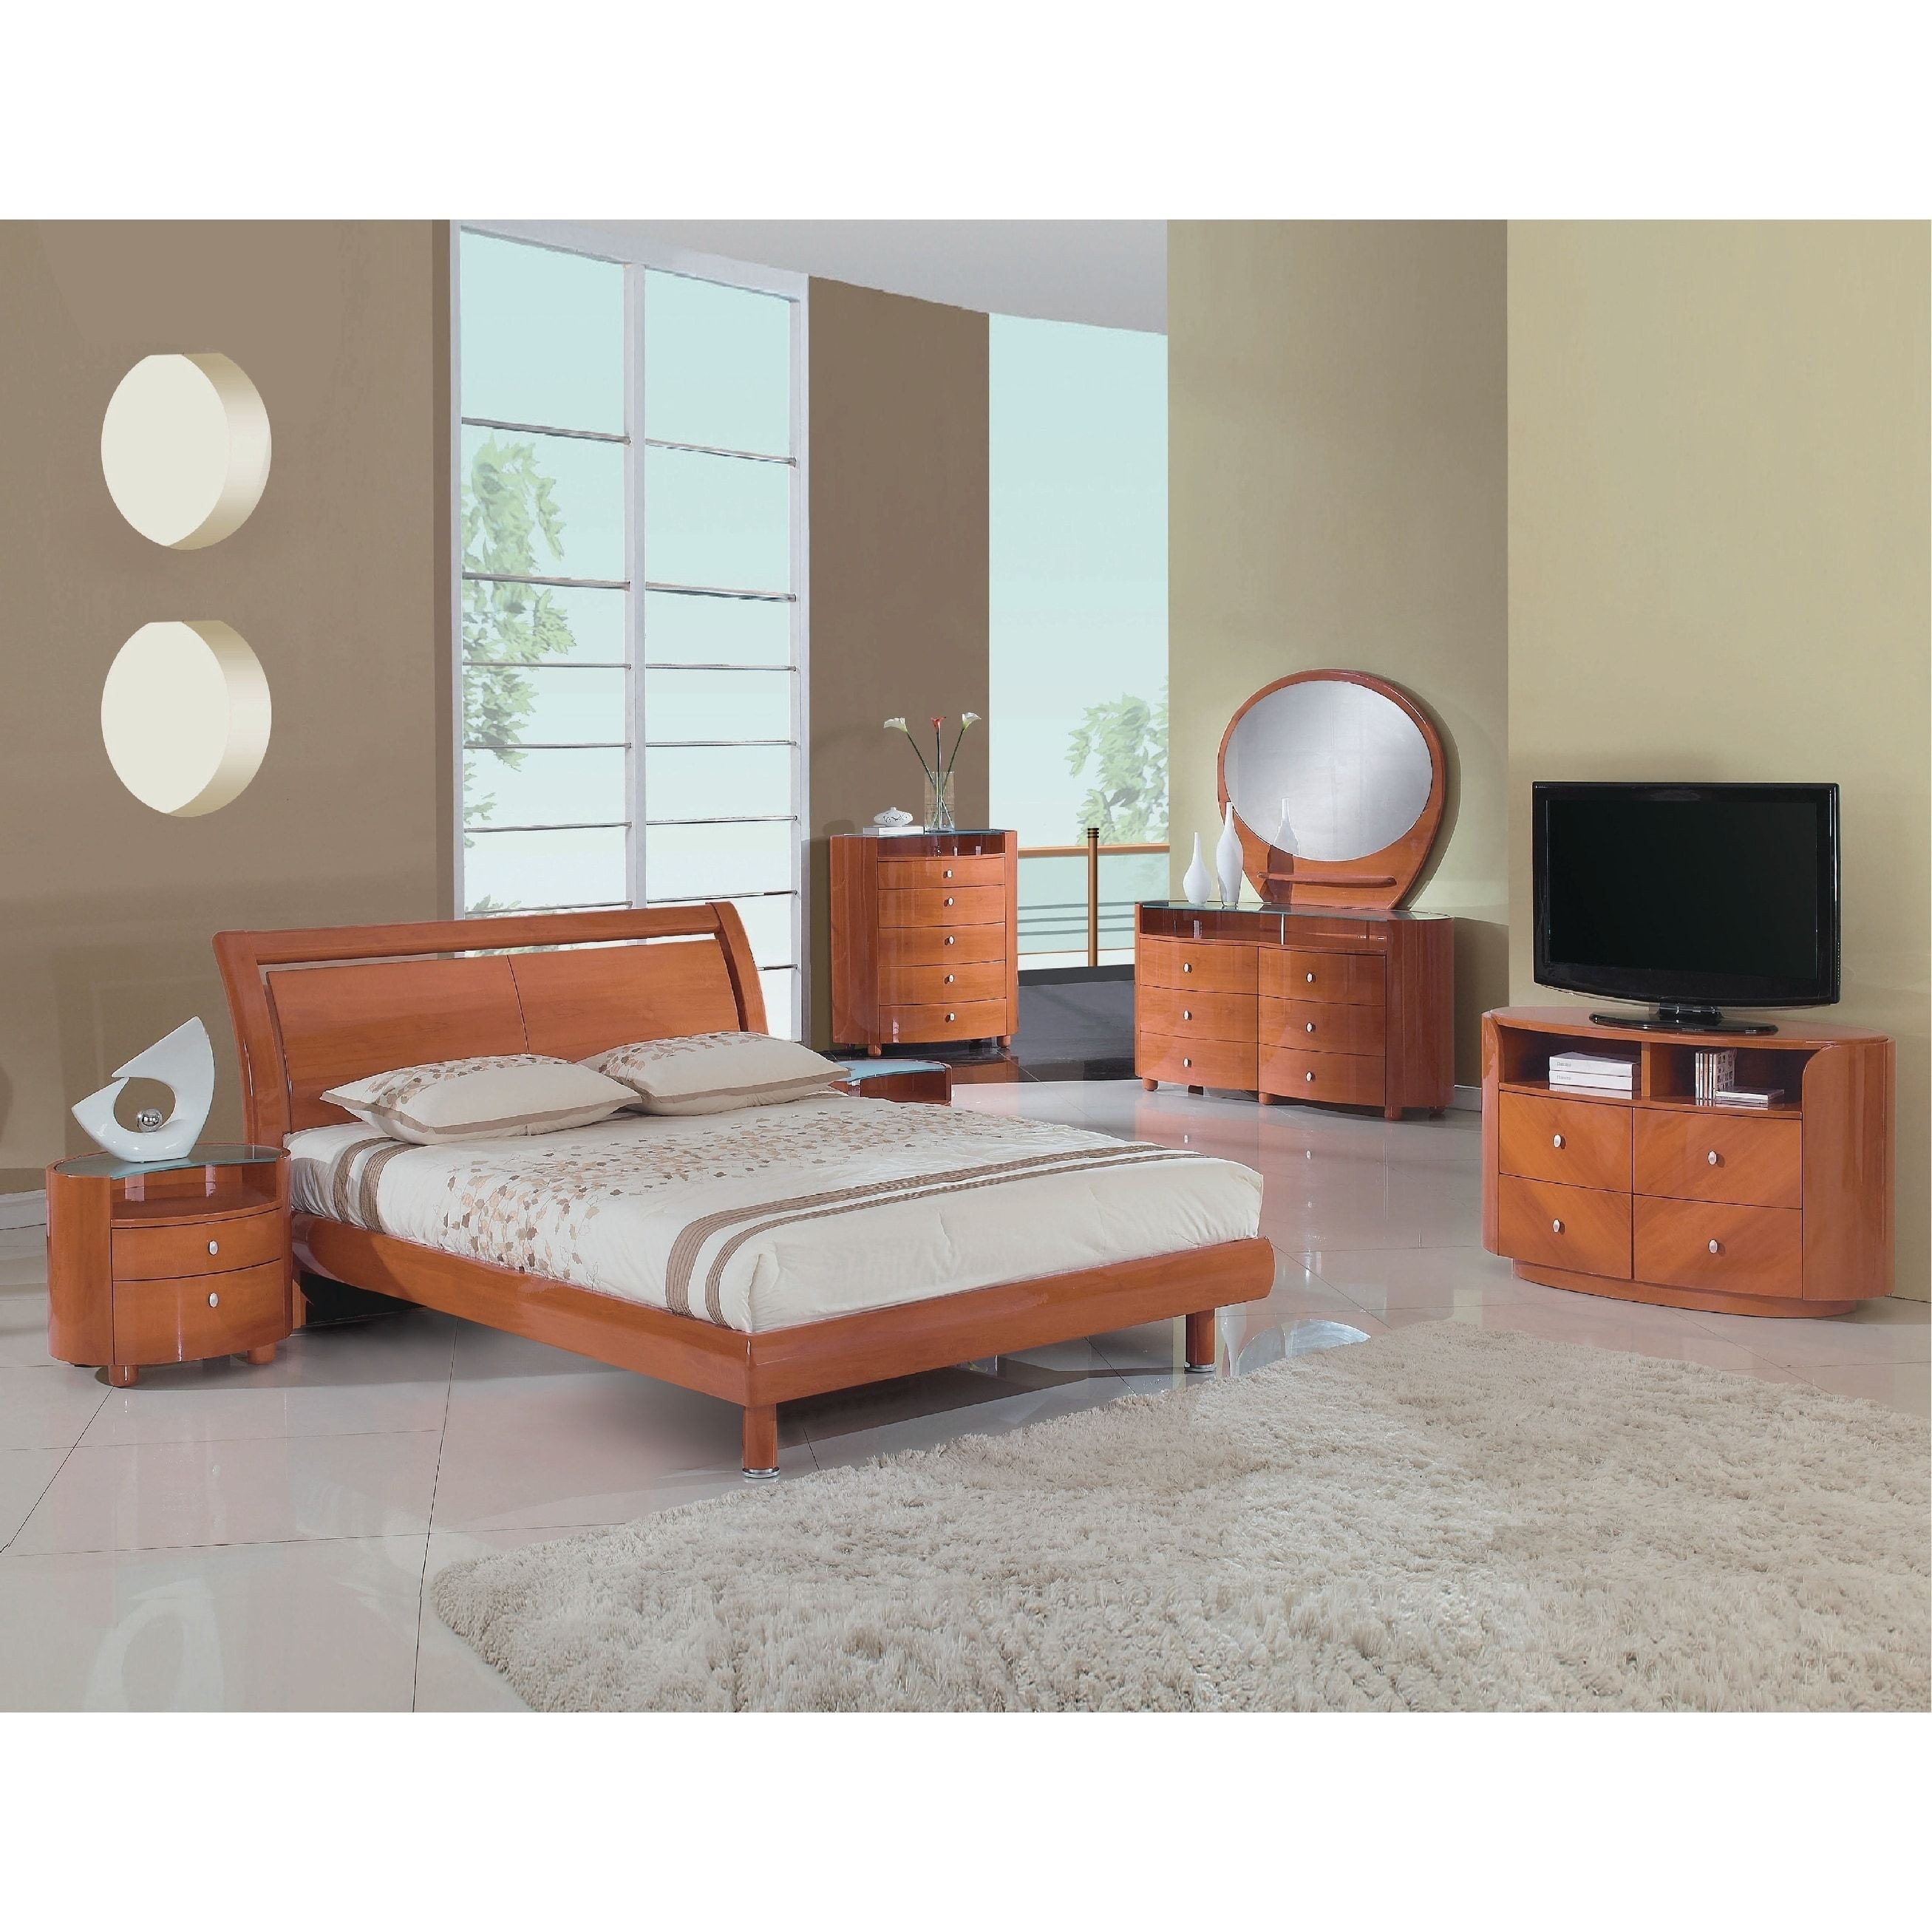 Cheap Bedroom Furniture Set Fresh Line Shopping Bedding Furniture Electronics Jewelry